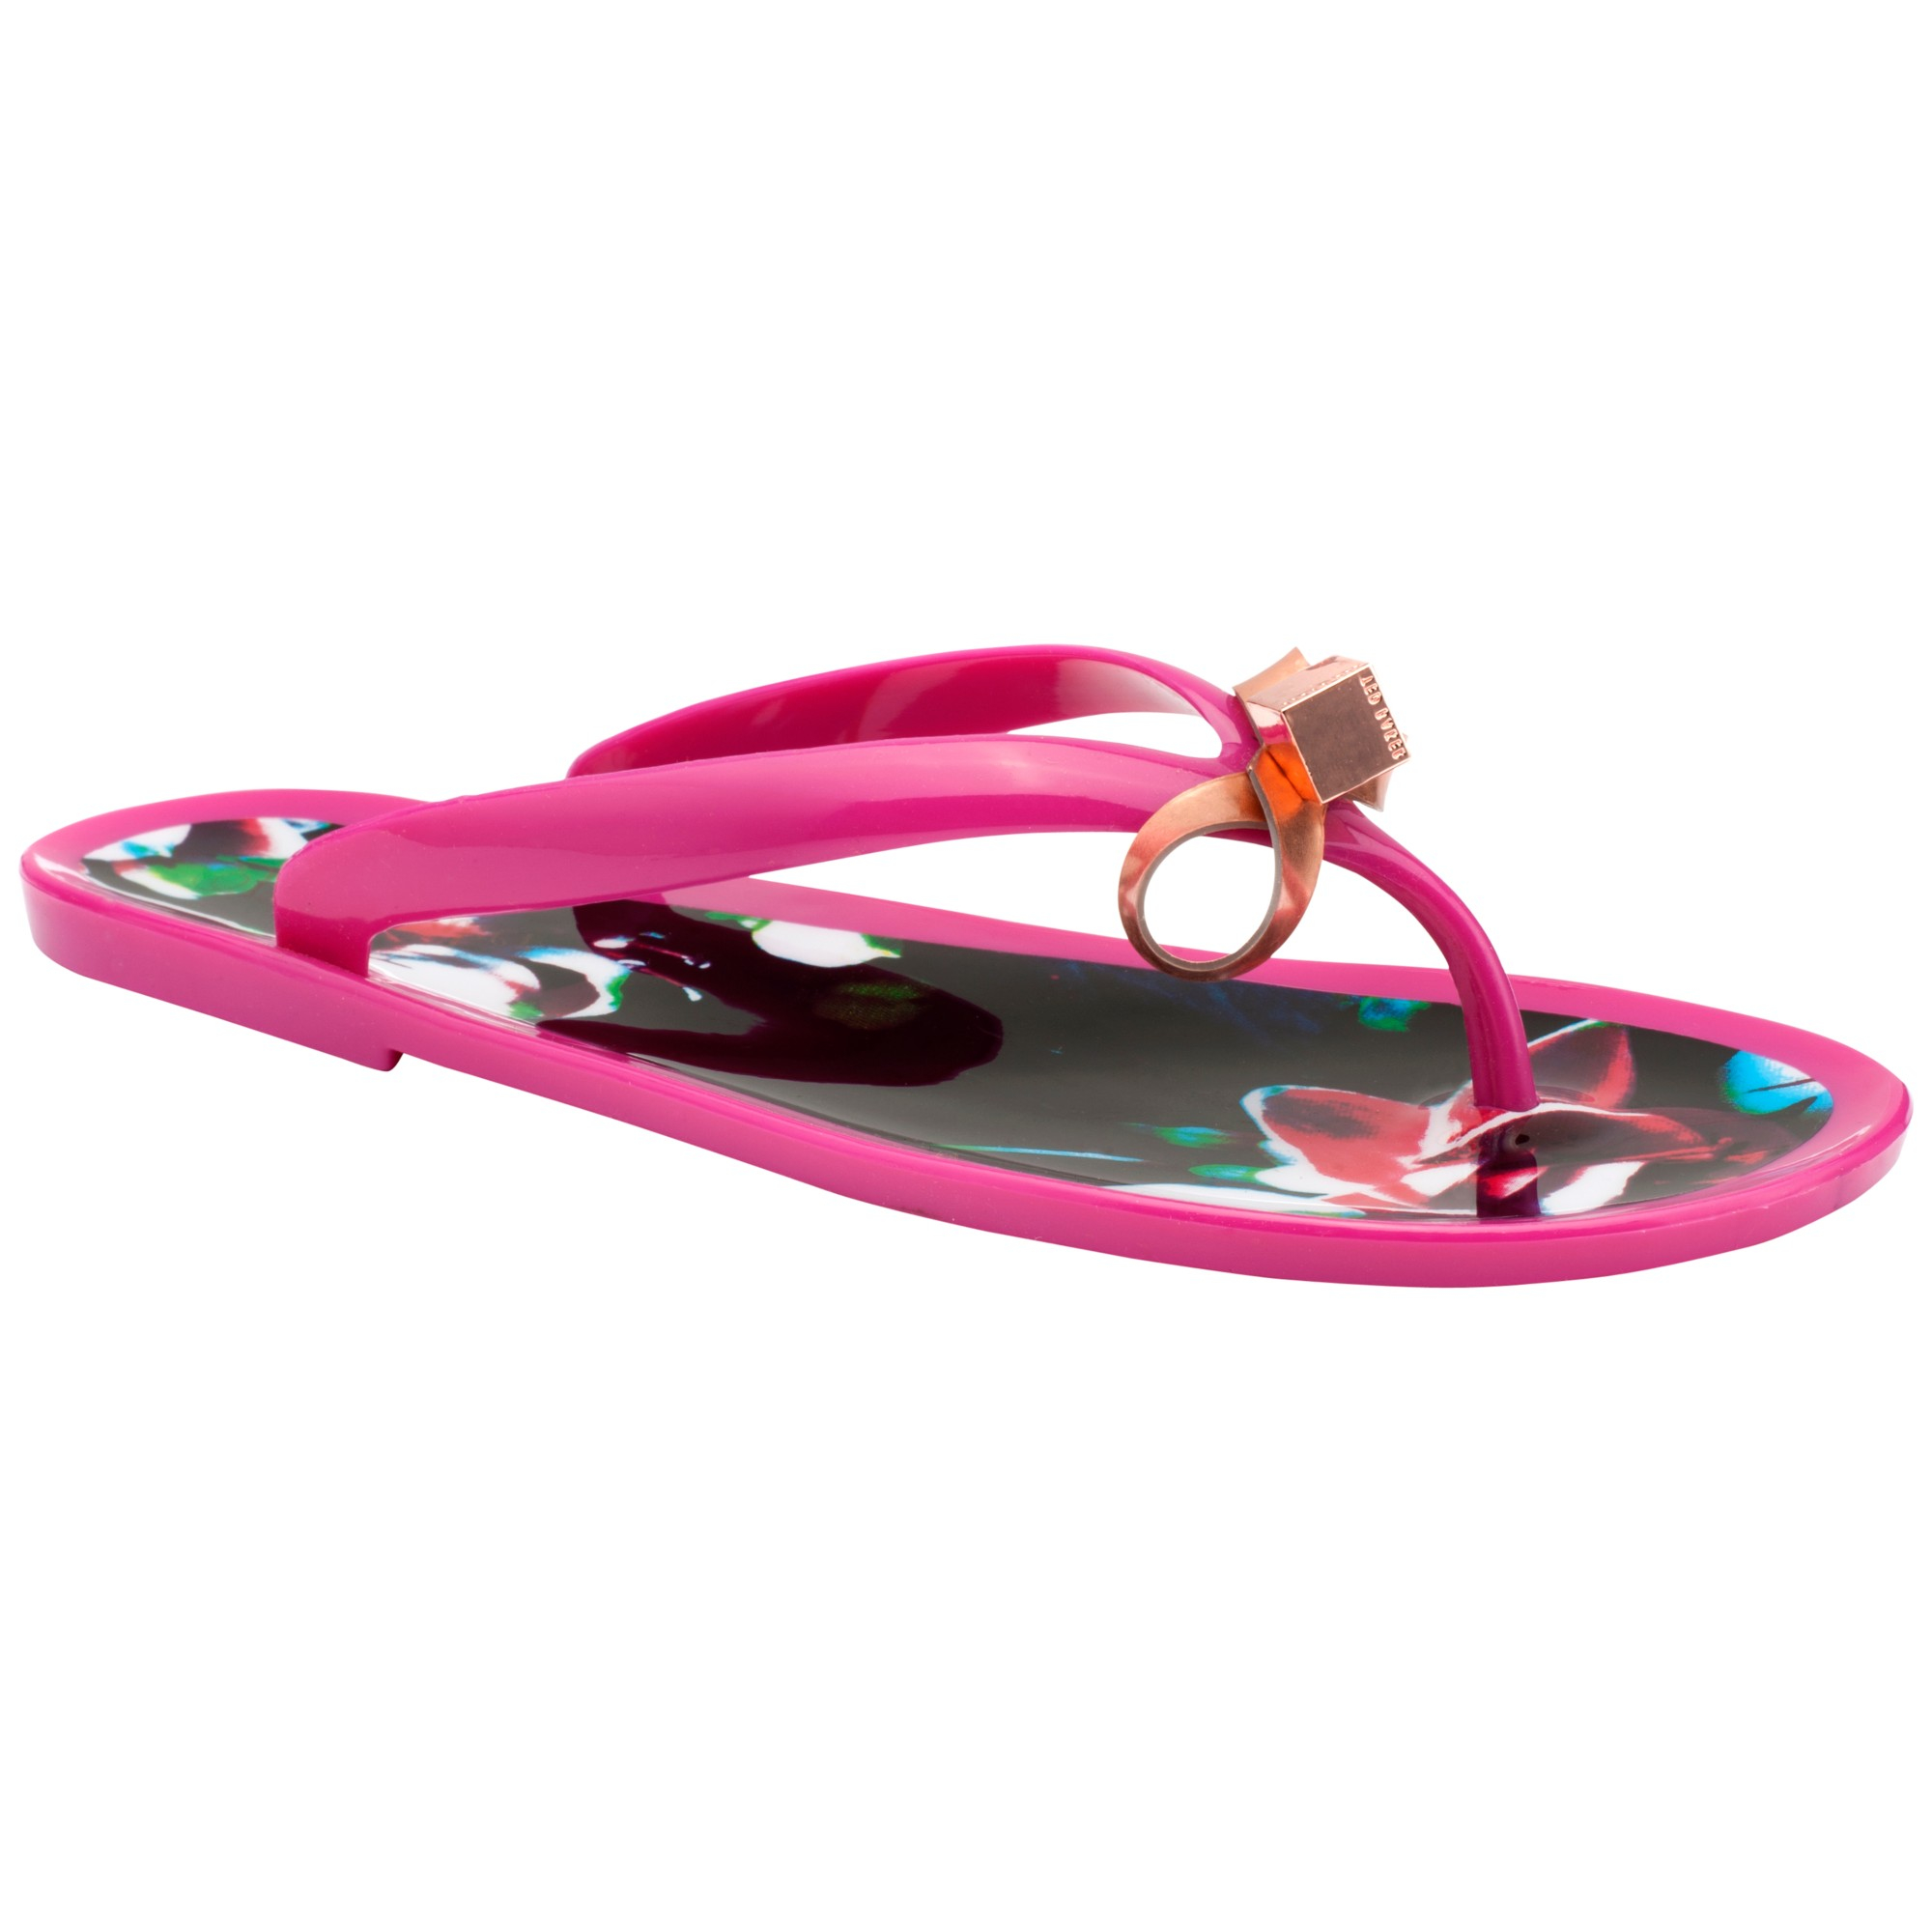 a960076b604660 Ted Baker Taito Jelly Flip Flops in Pink - Lyst